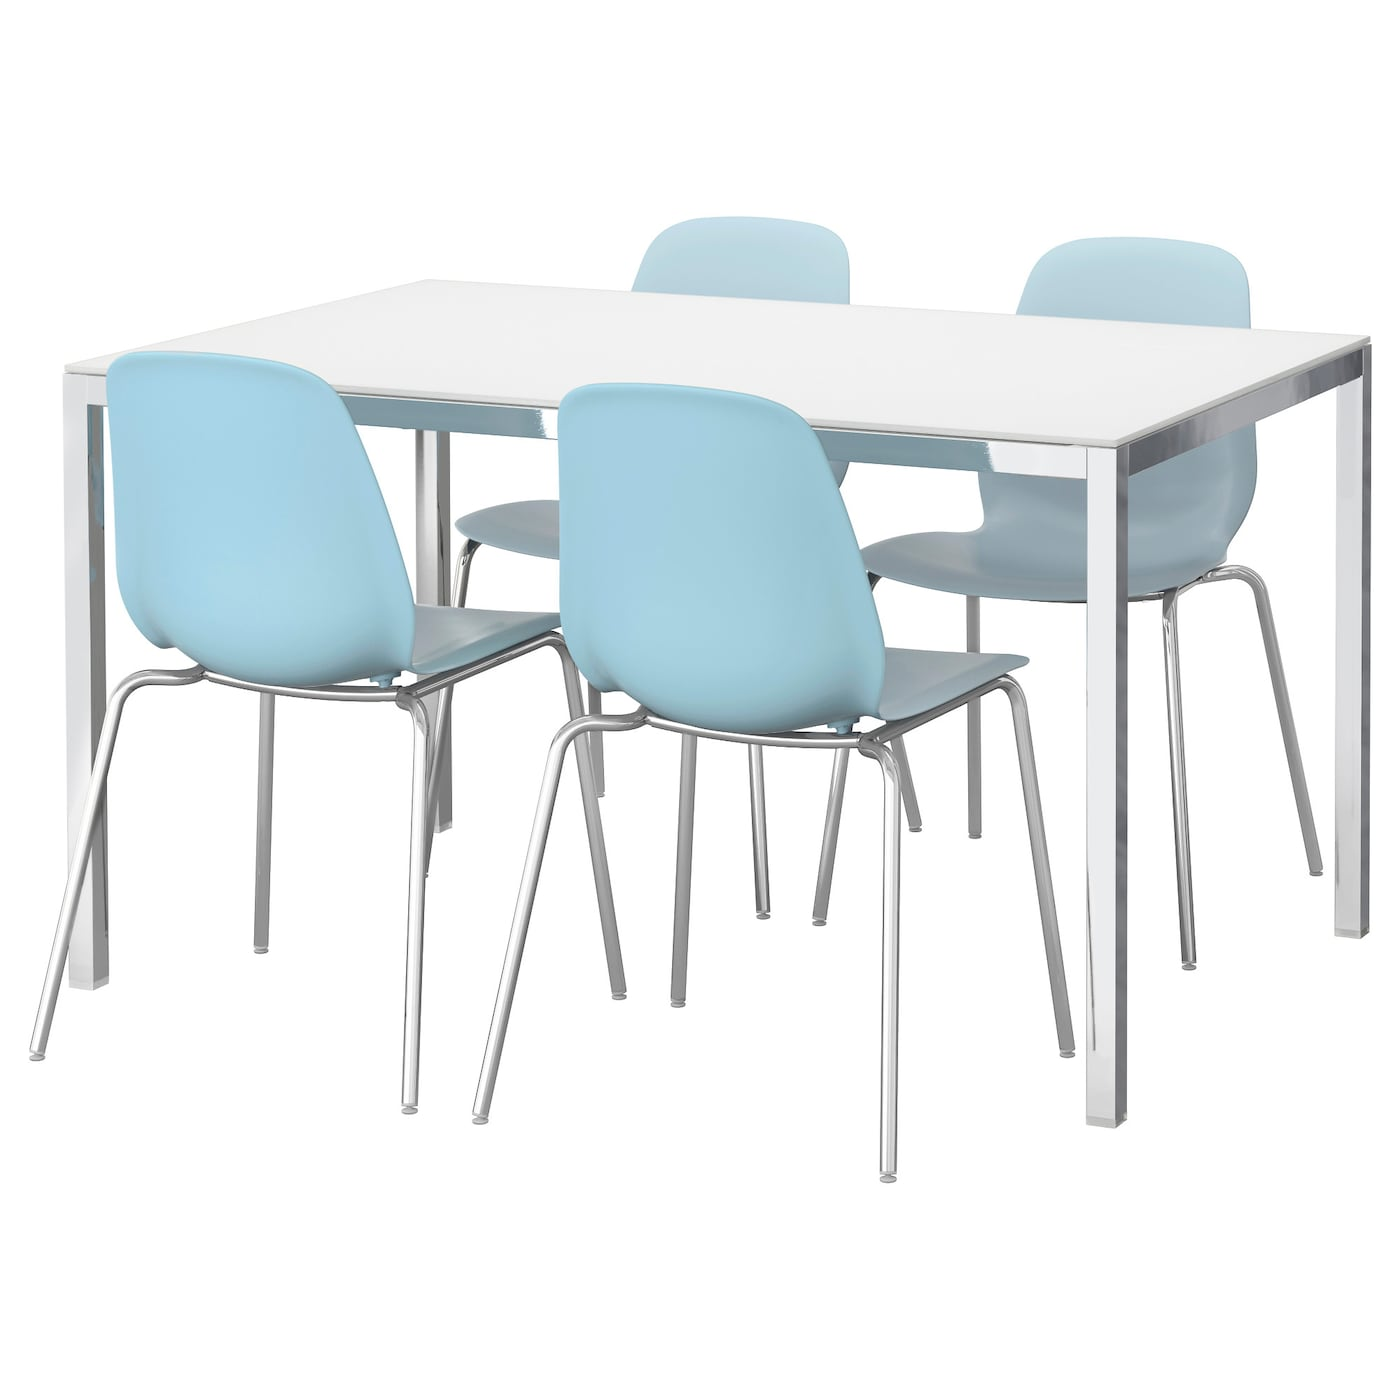 Kitchen Chairs Ireland: Up To 4 Seats